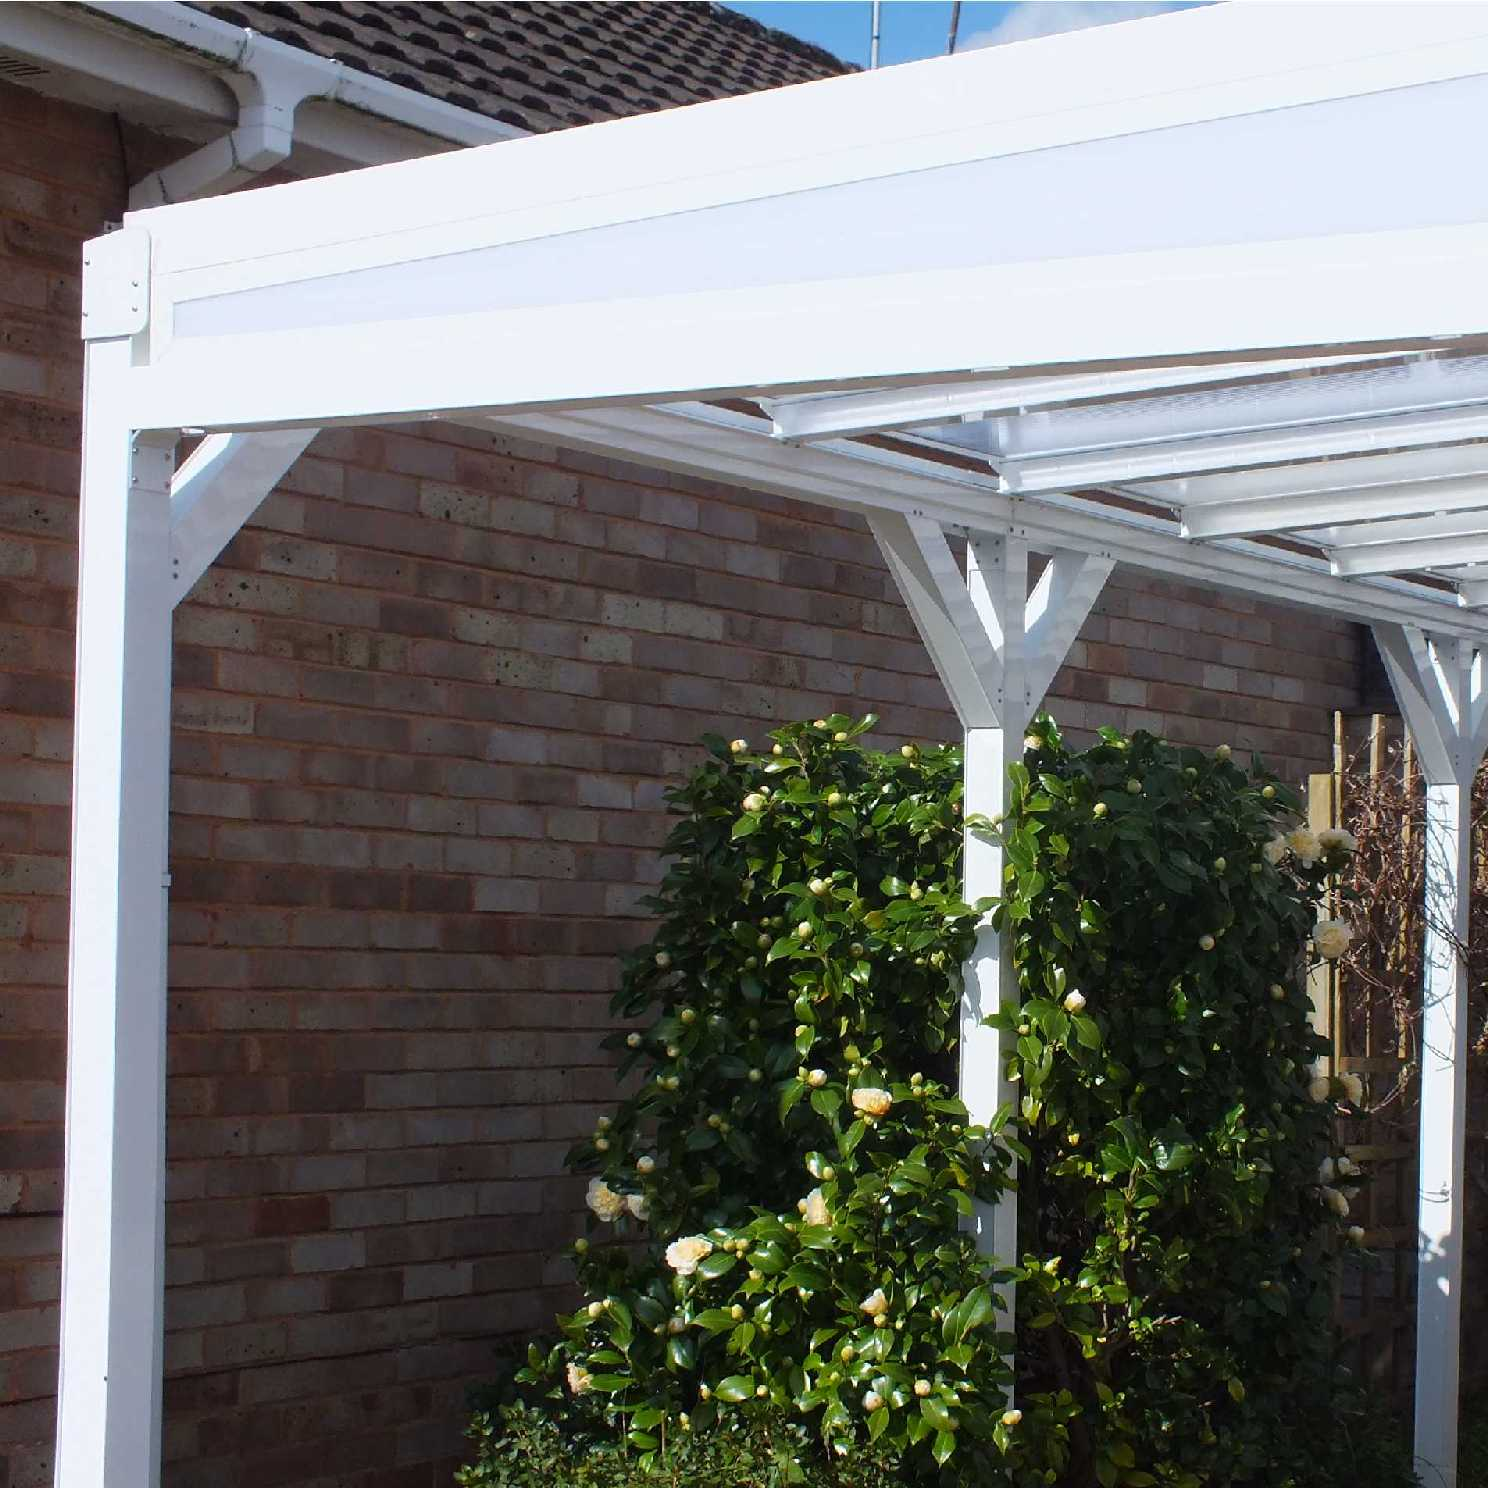 Omega Smart Lean-To Canopy with 16mm Polycarbonate Glazing - 12.0m (W) x 3.0m (P), (5) Supporting Posts from Omega Build